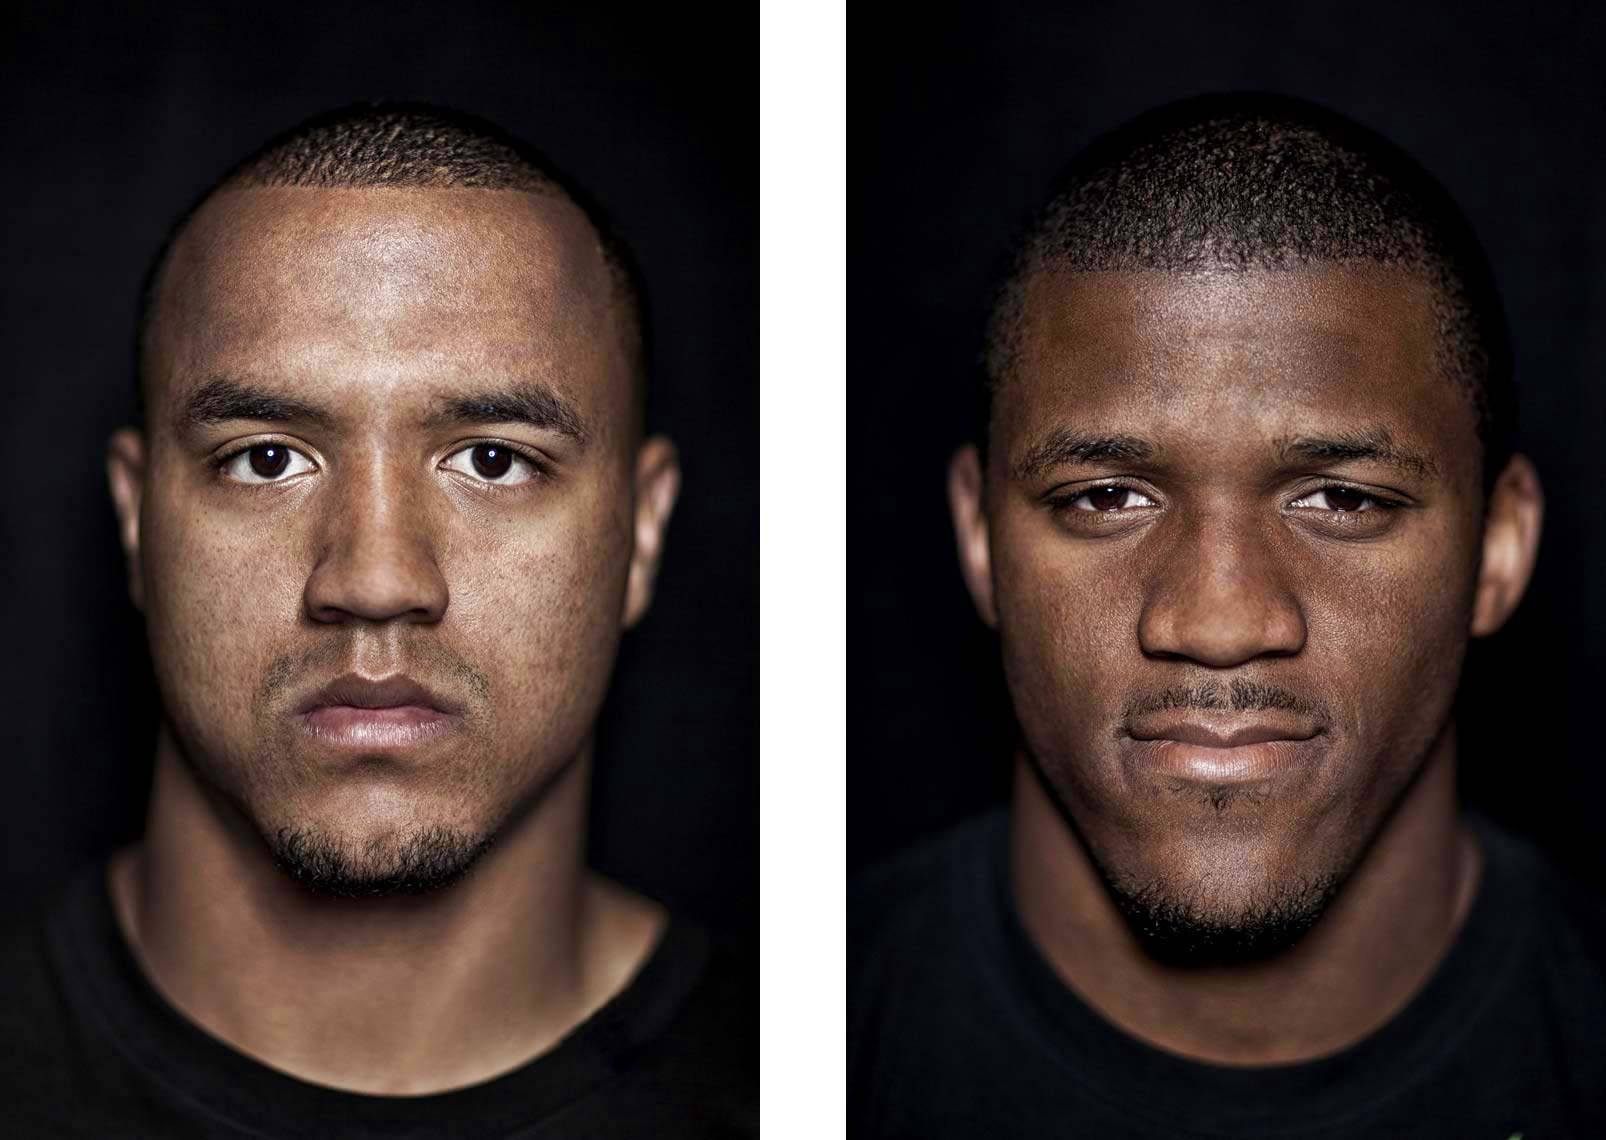 Philadelphia Photographer STEVE BOYLE - Michael Floyd, LaMichael James